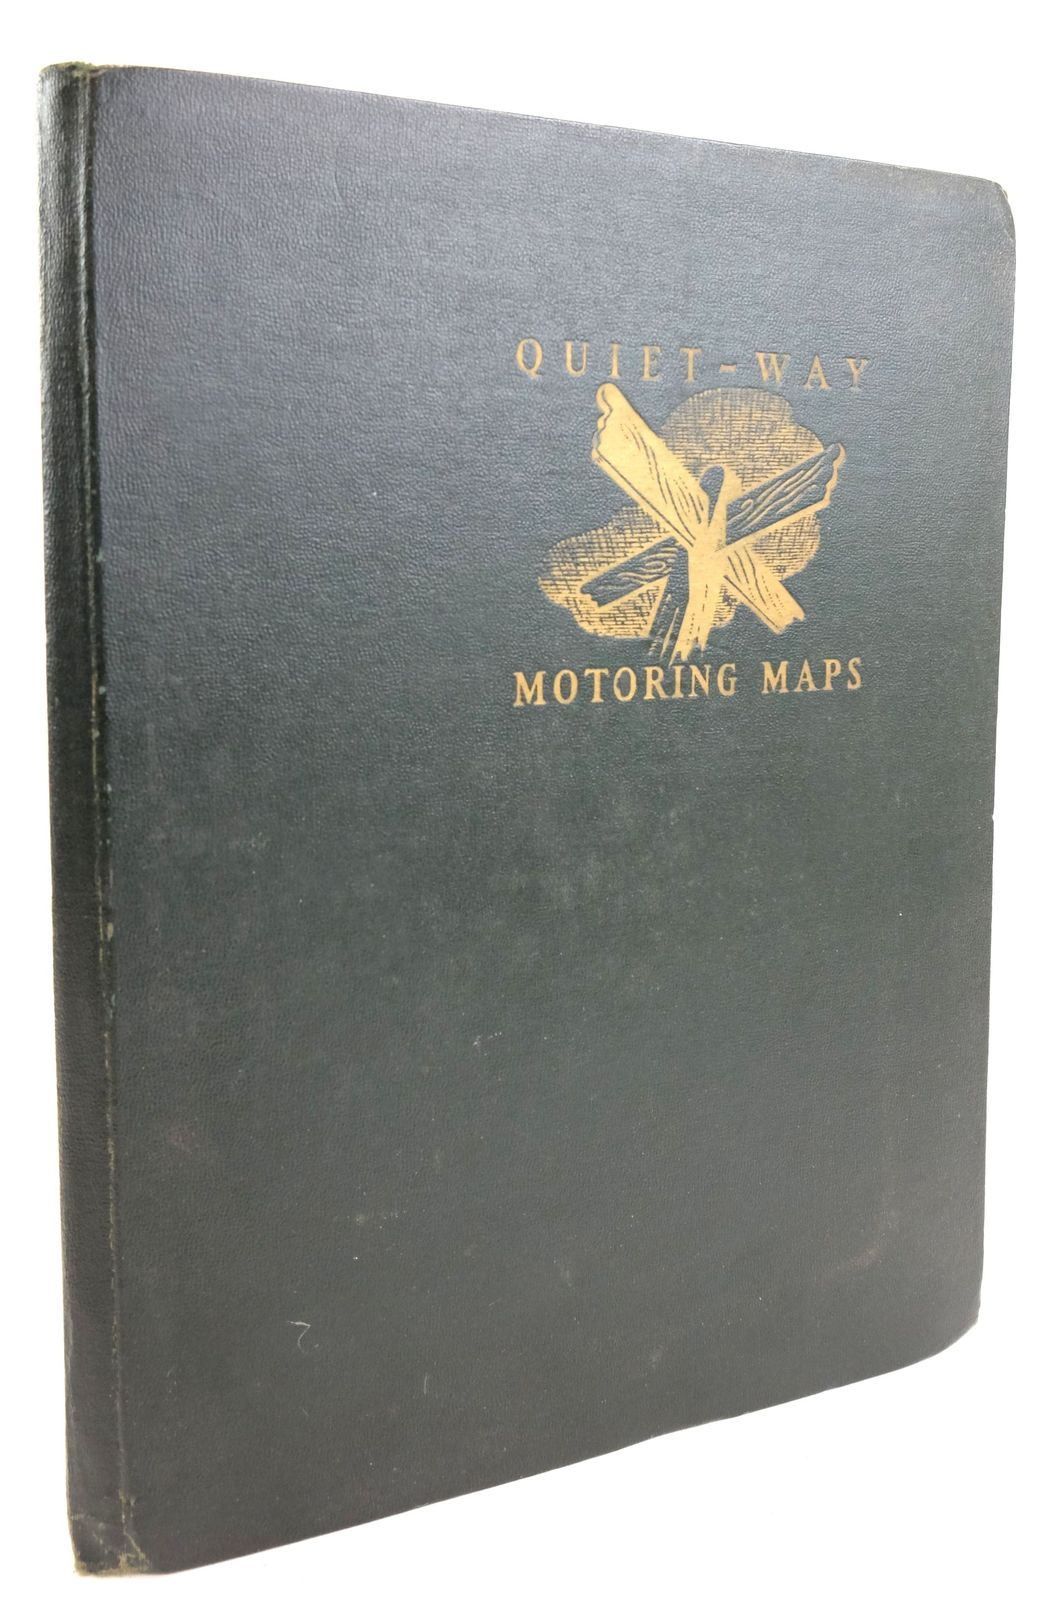 Photo of QUIET-WAY MOTORING MAPS- Stock Number: 1819815